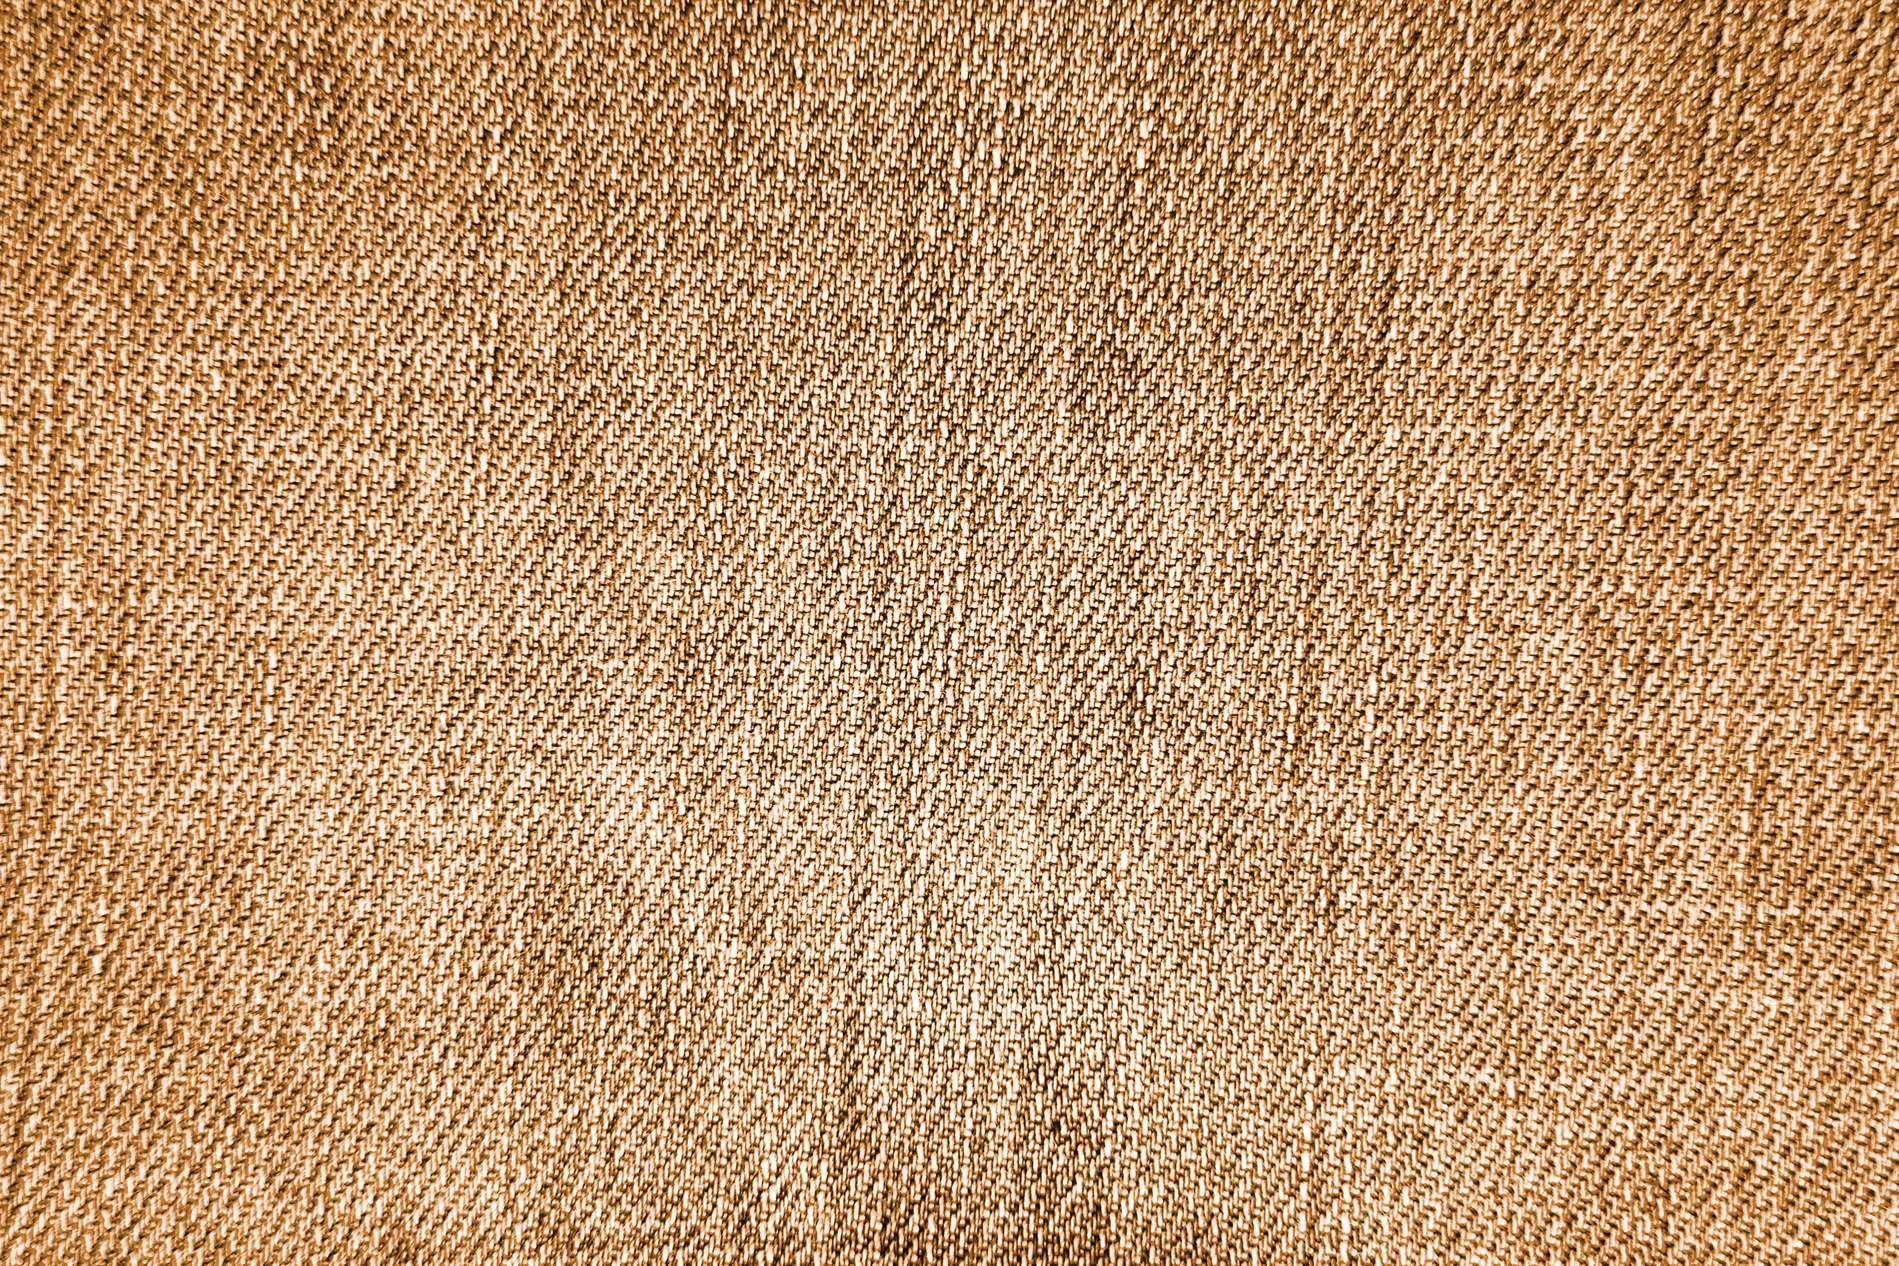 Brown Vintage Fabric Texture Background